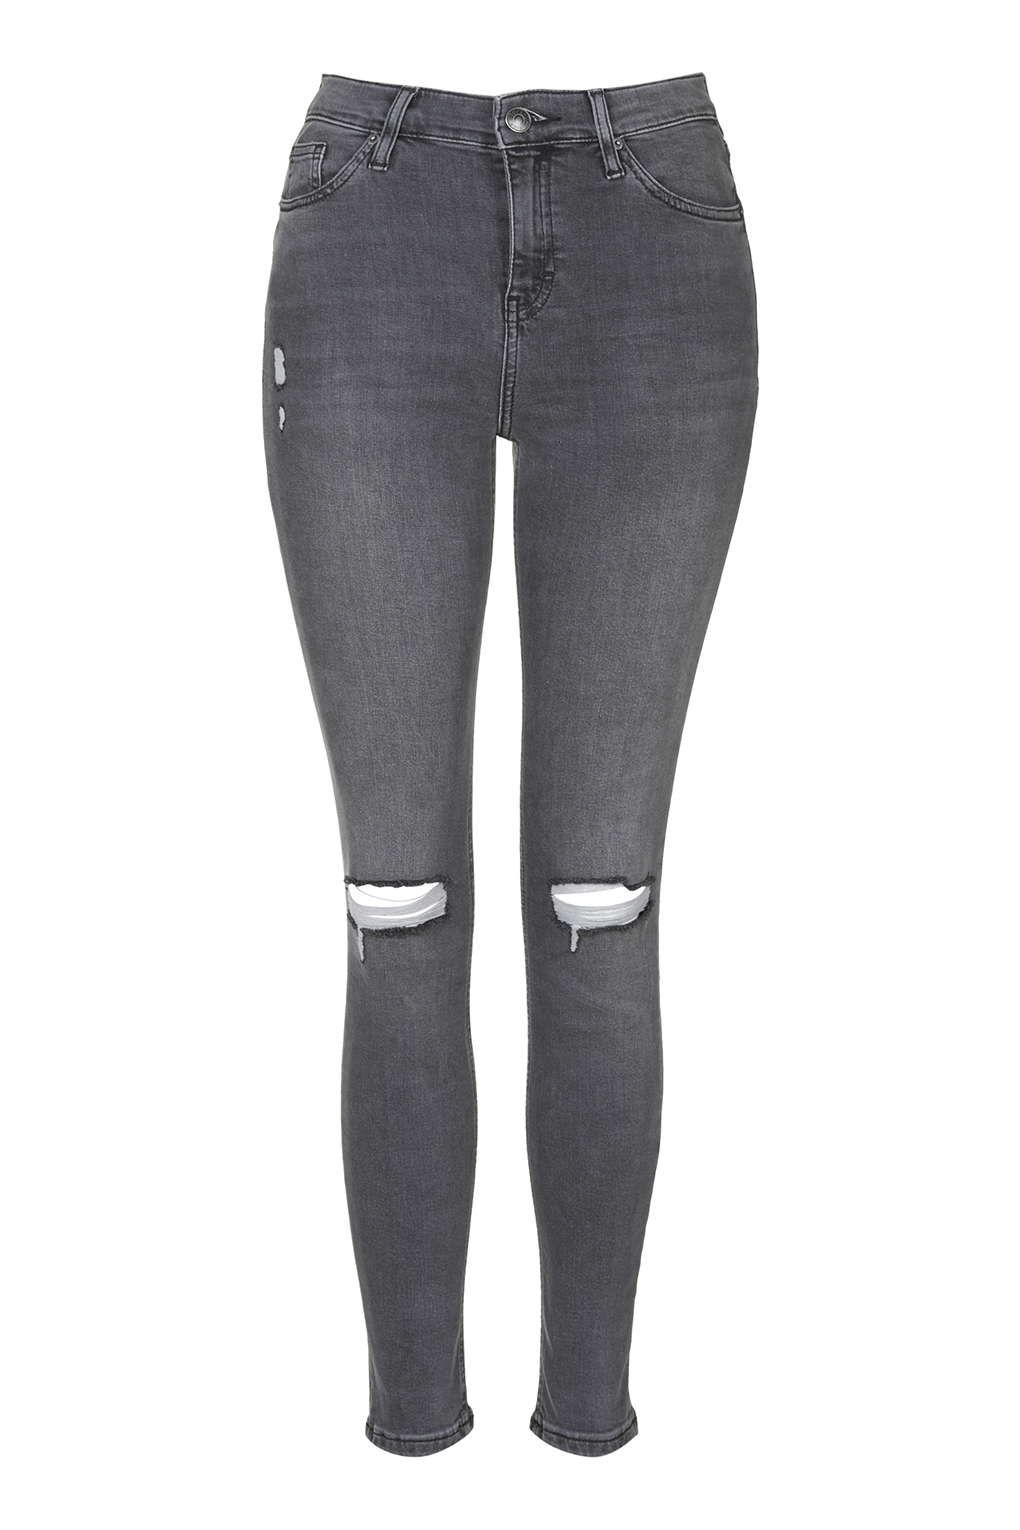 MOTO Grey Ripped Jamie Jeans - Topshop